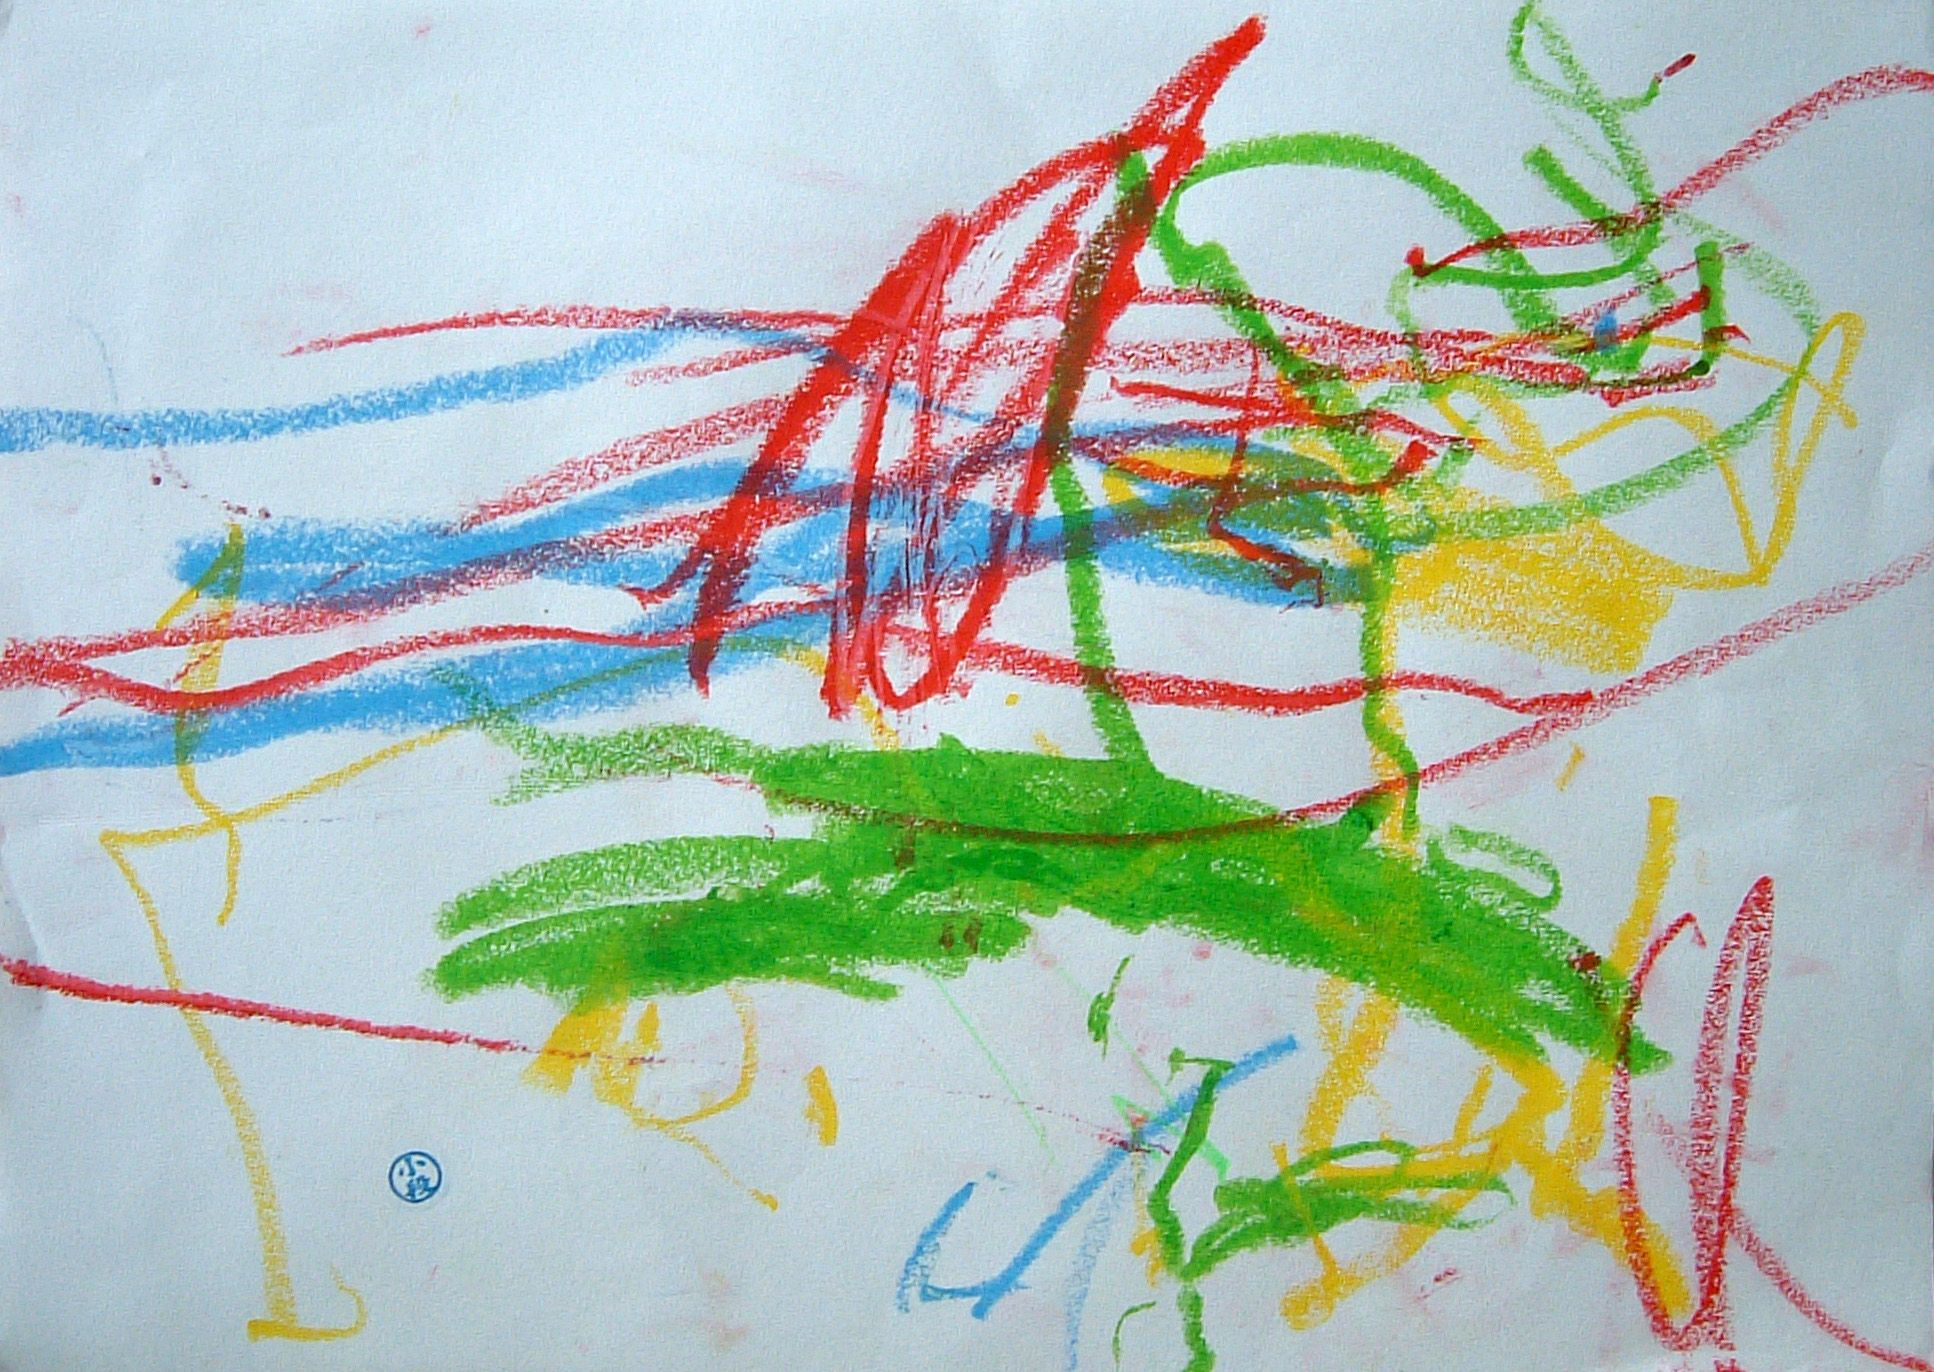 Scribble Drawing For Kids : Children s drawings what can we infer from them kids menu